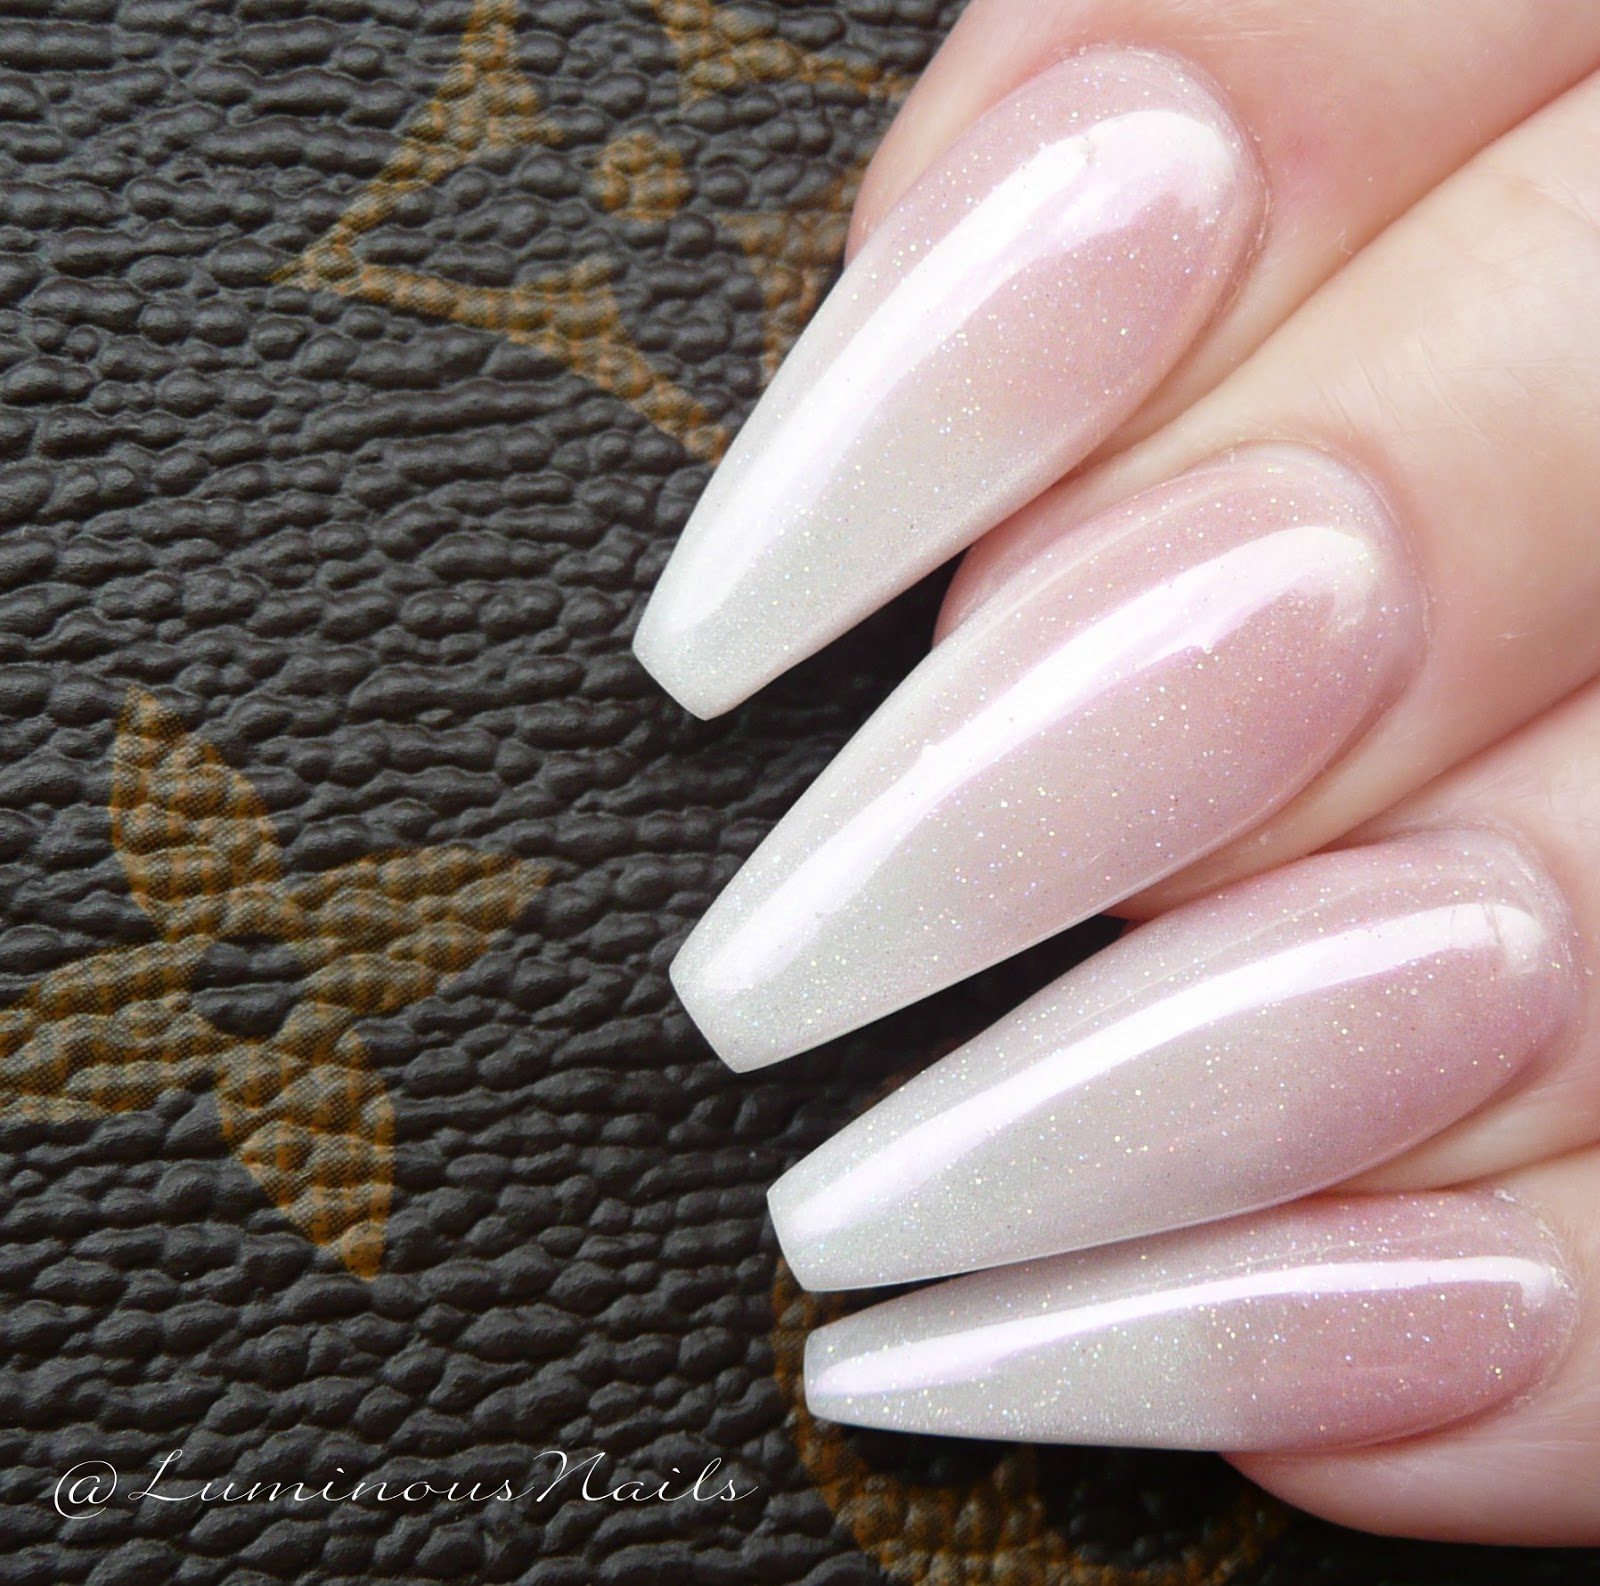 Luminous Nails: Stunning Pearly Ombre Chrome, Acrylic Nails.